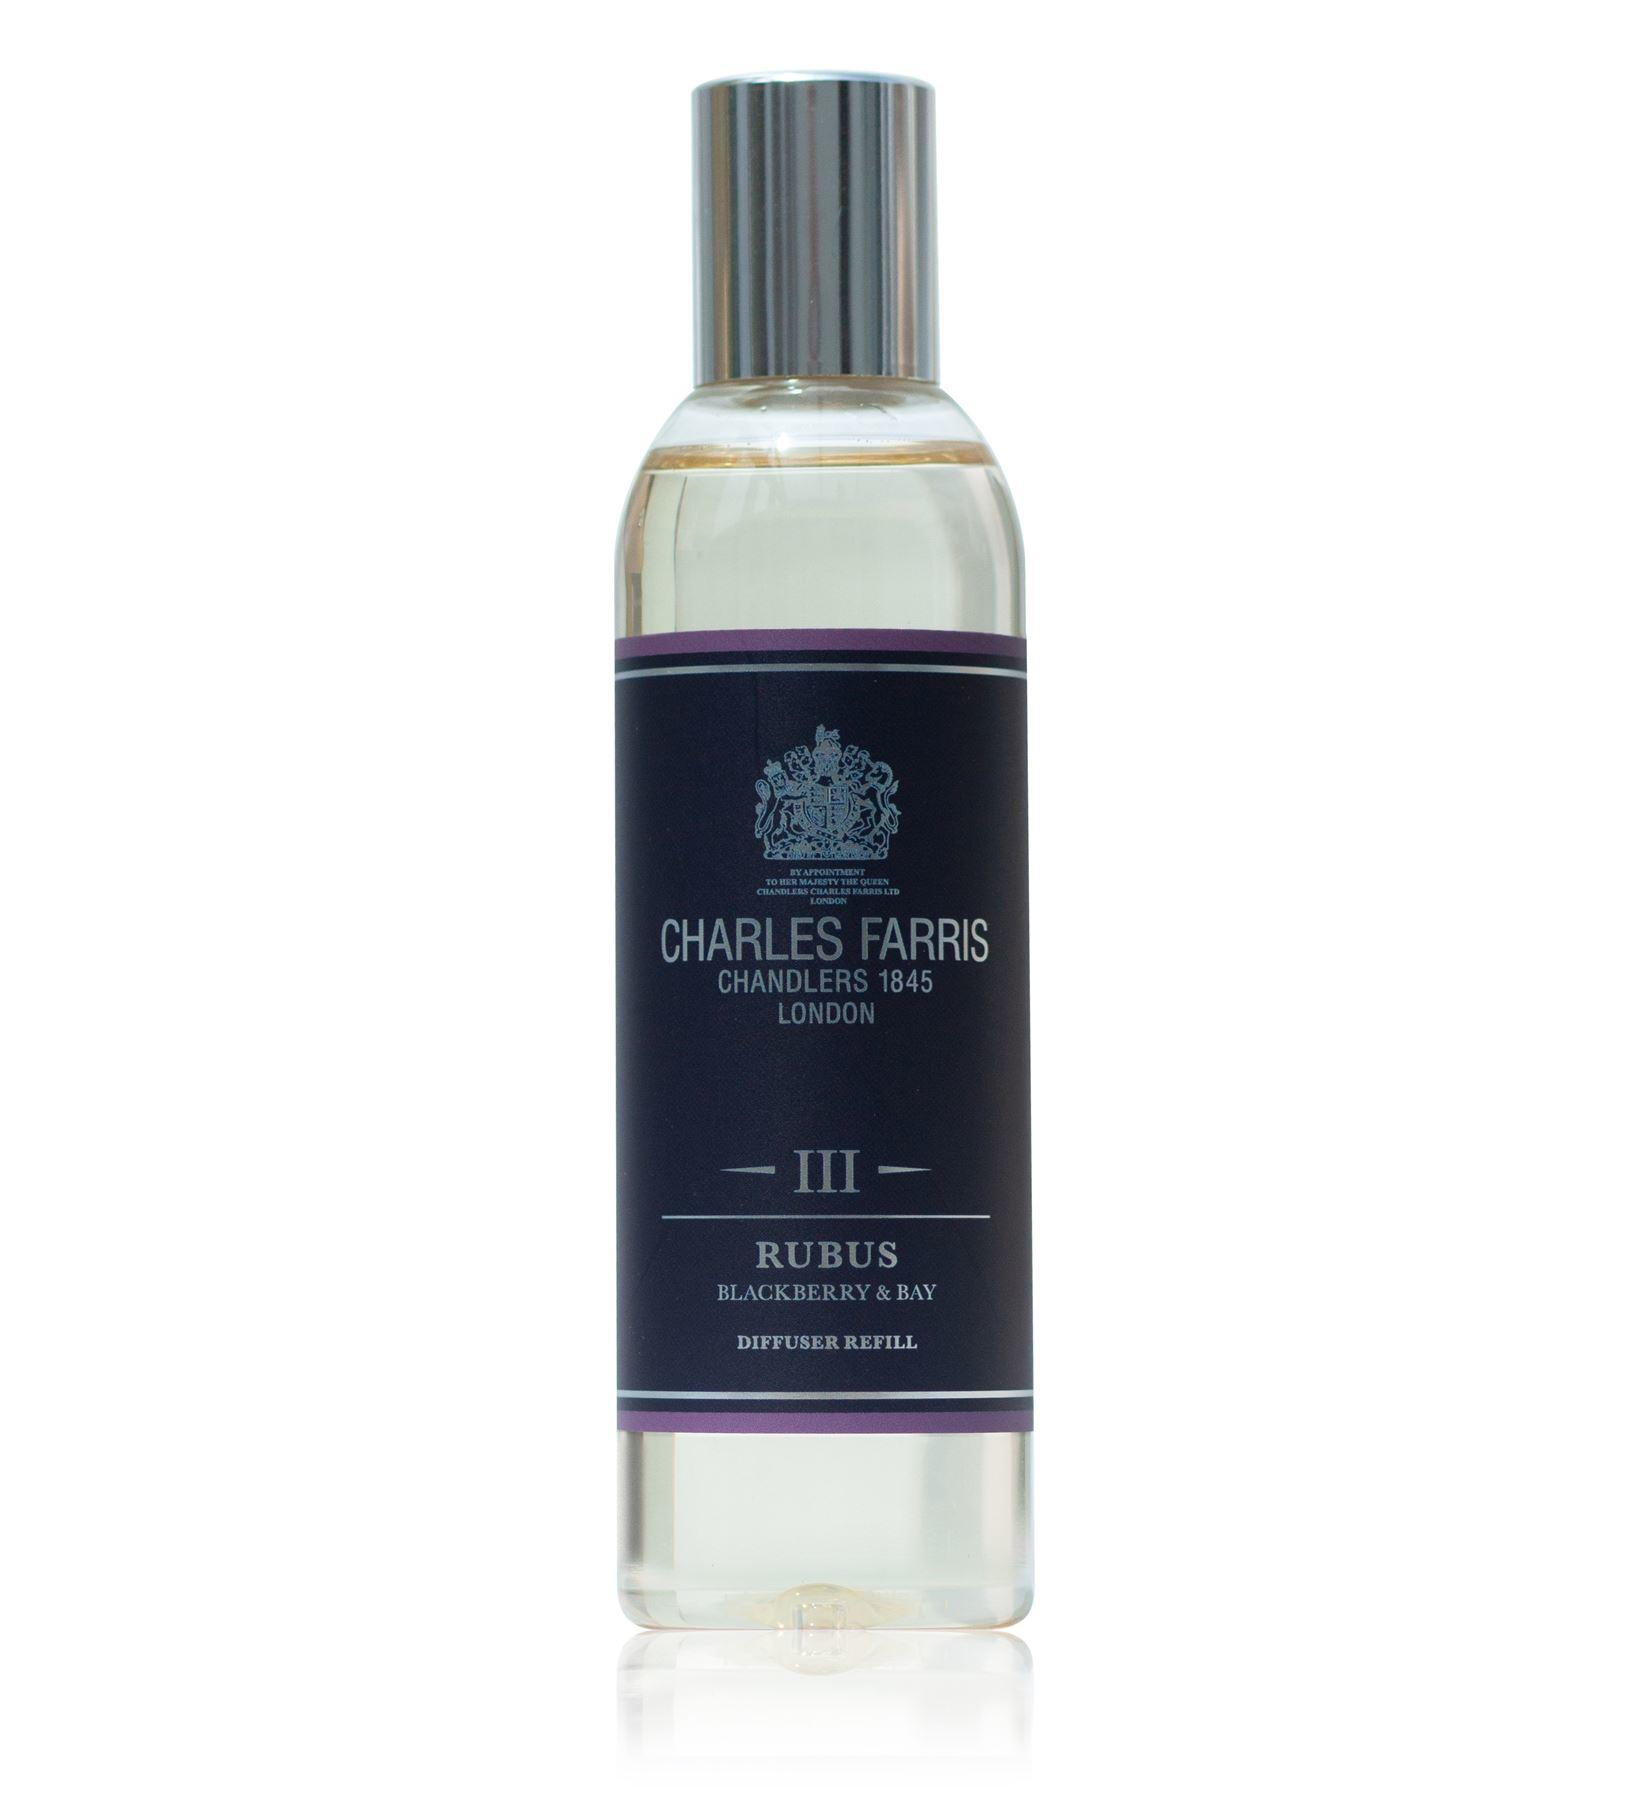 Charles Farris Rubus Reed Diffuser Oil Refill